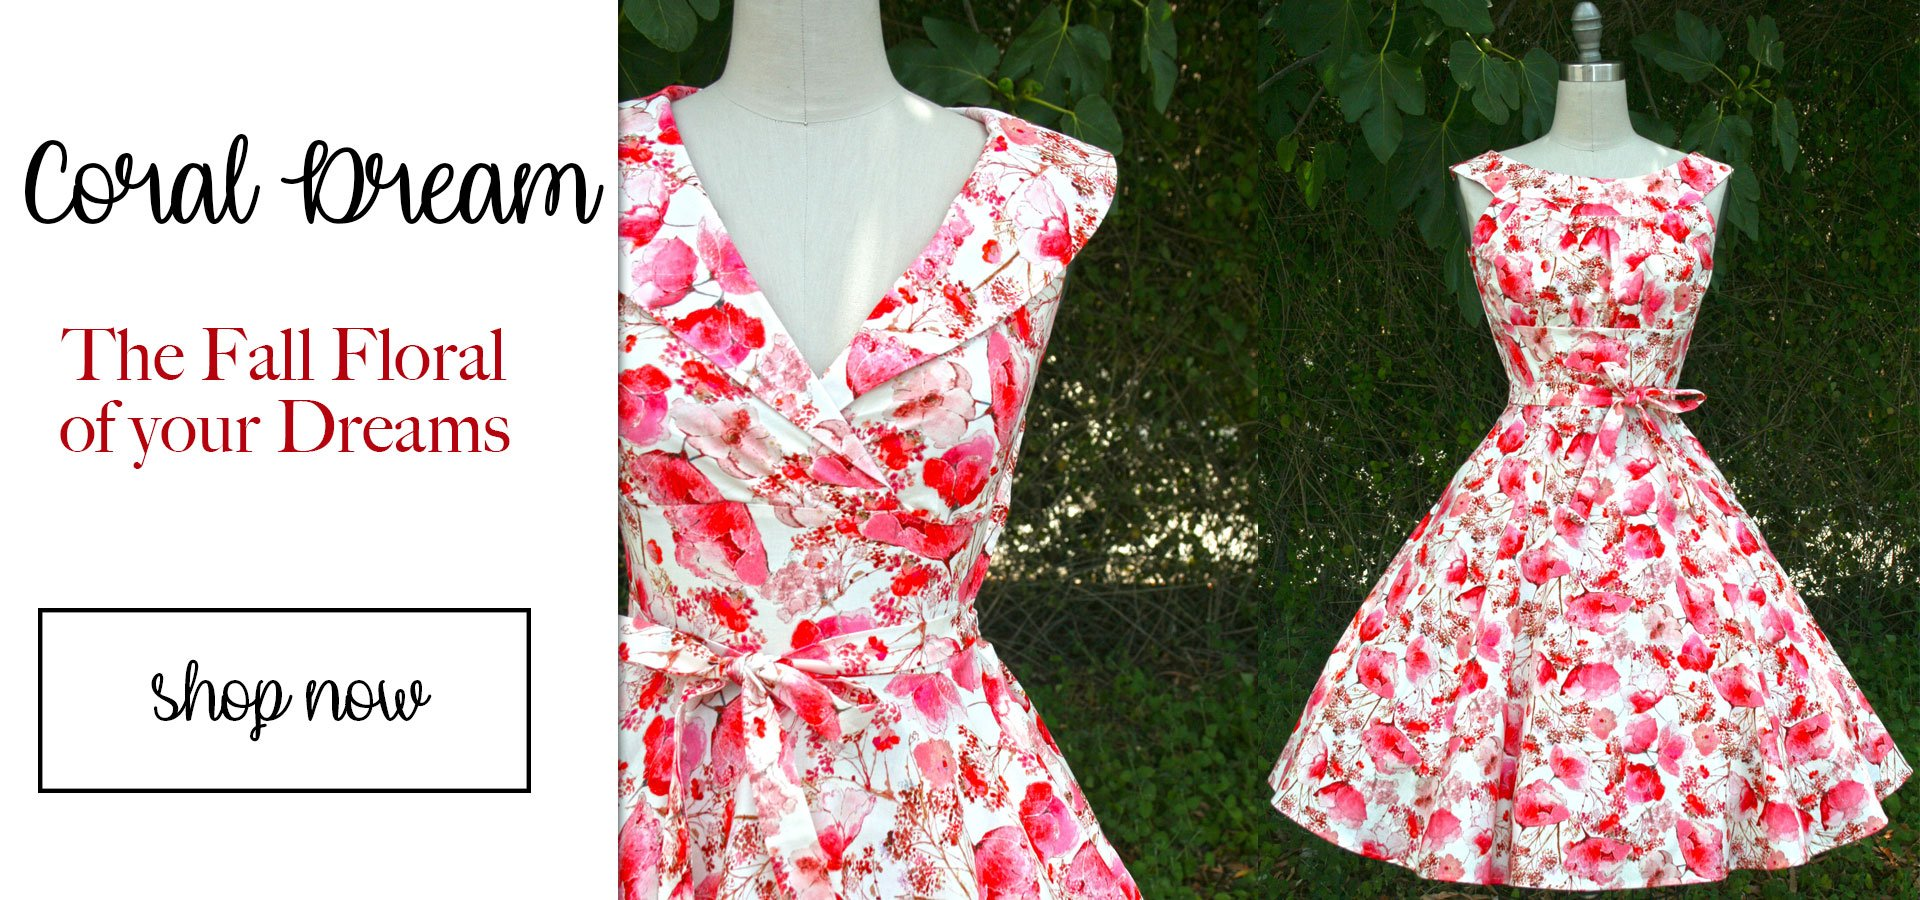 Southern California Belle SPring is here! roll out the floral dresses. read review of heart of haute's marie dress